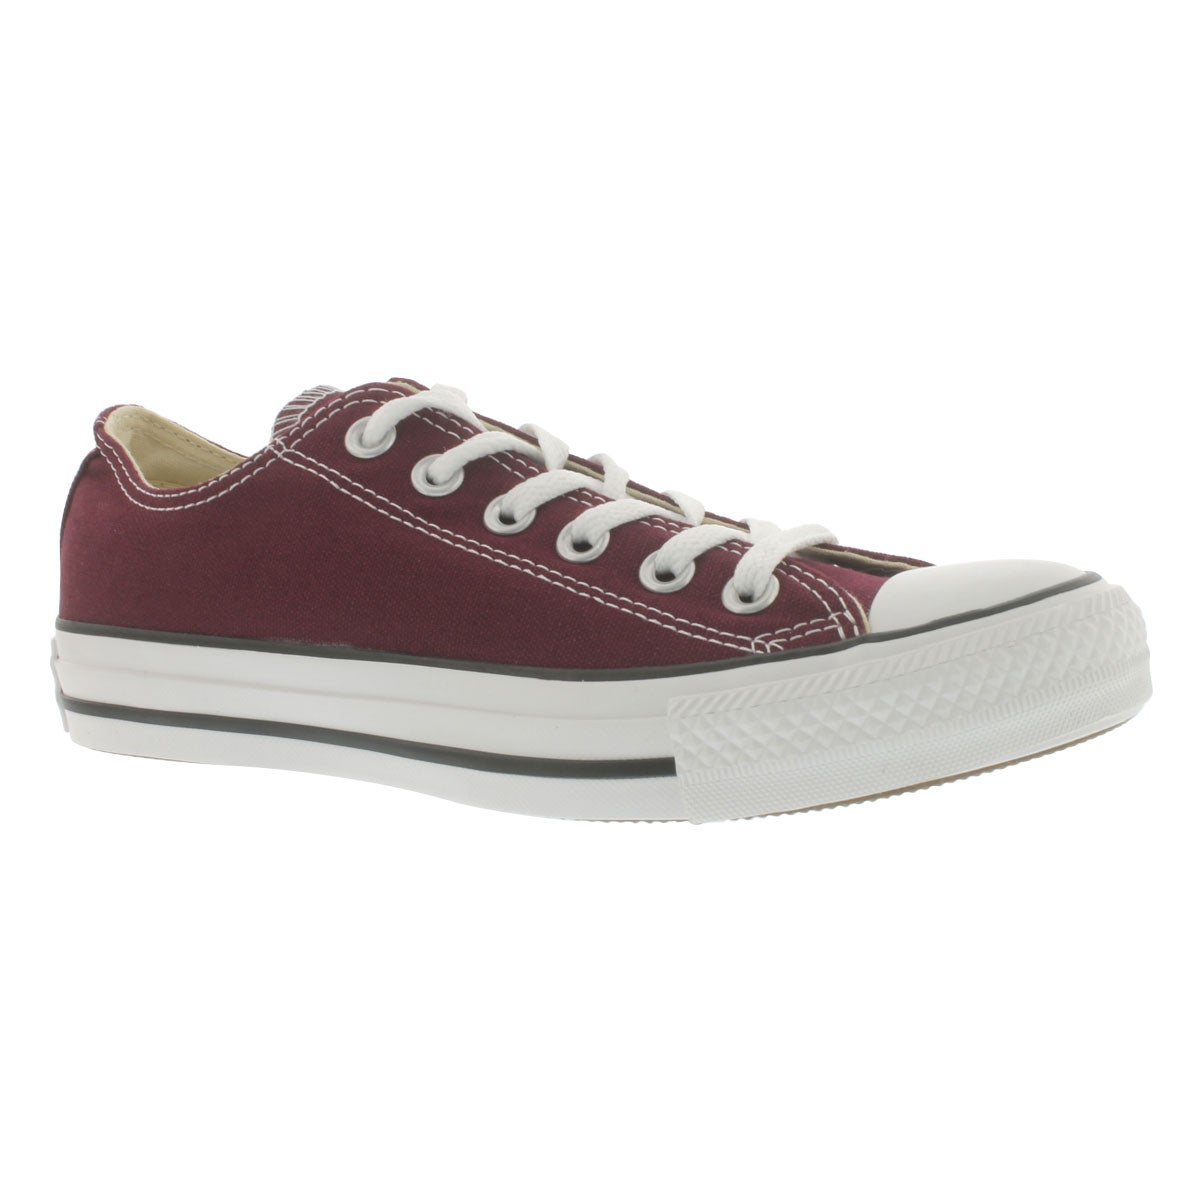 Women's CHUCK TAYLOR ALL STAR burgundy sneakers